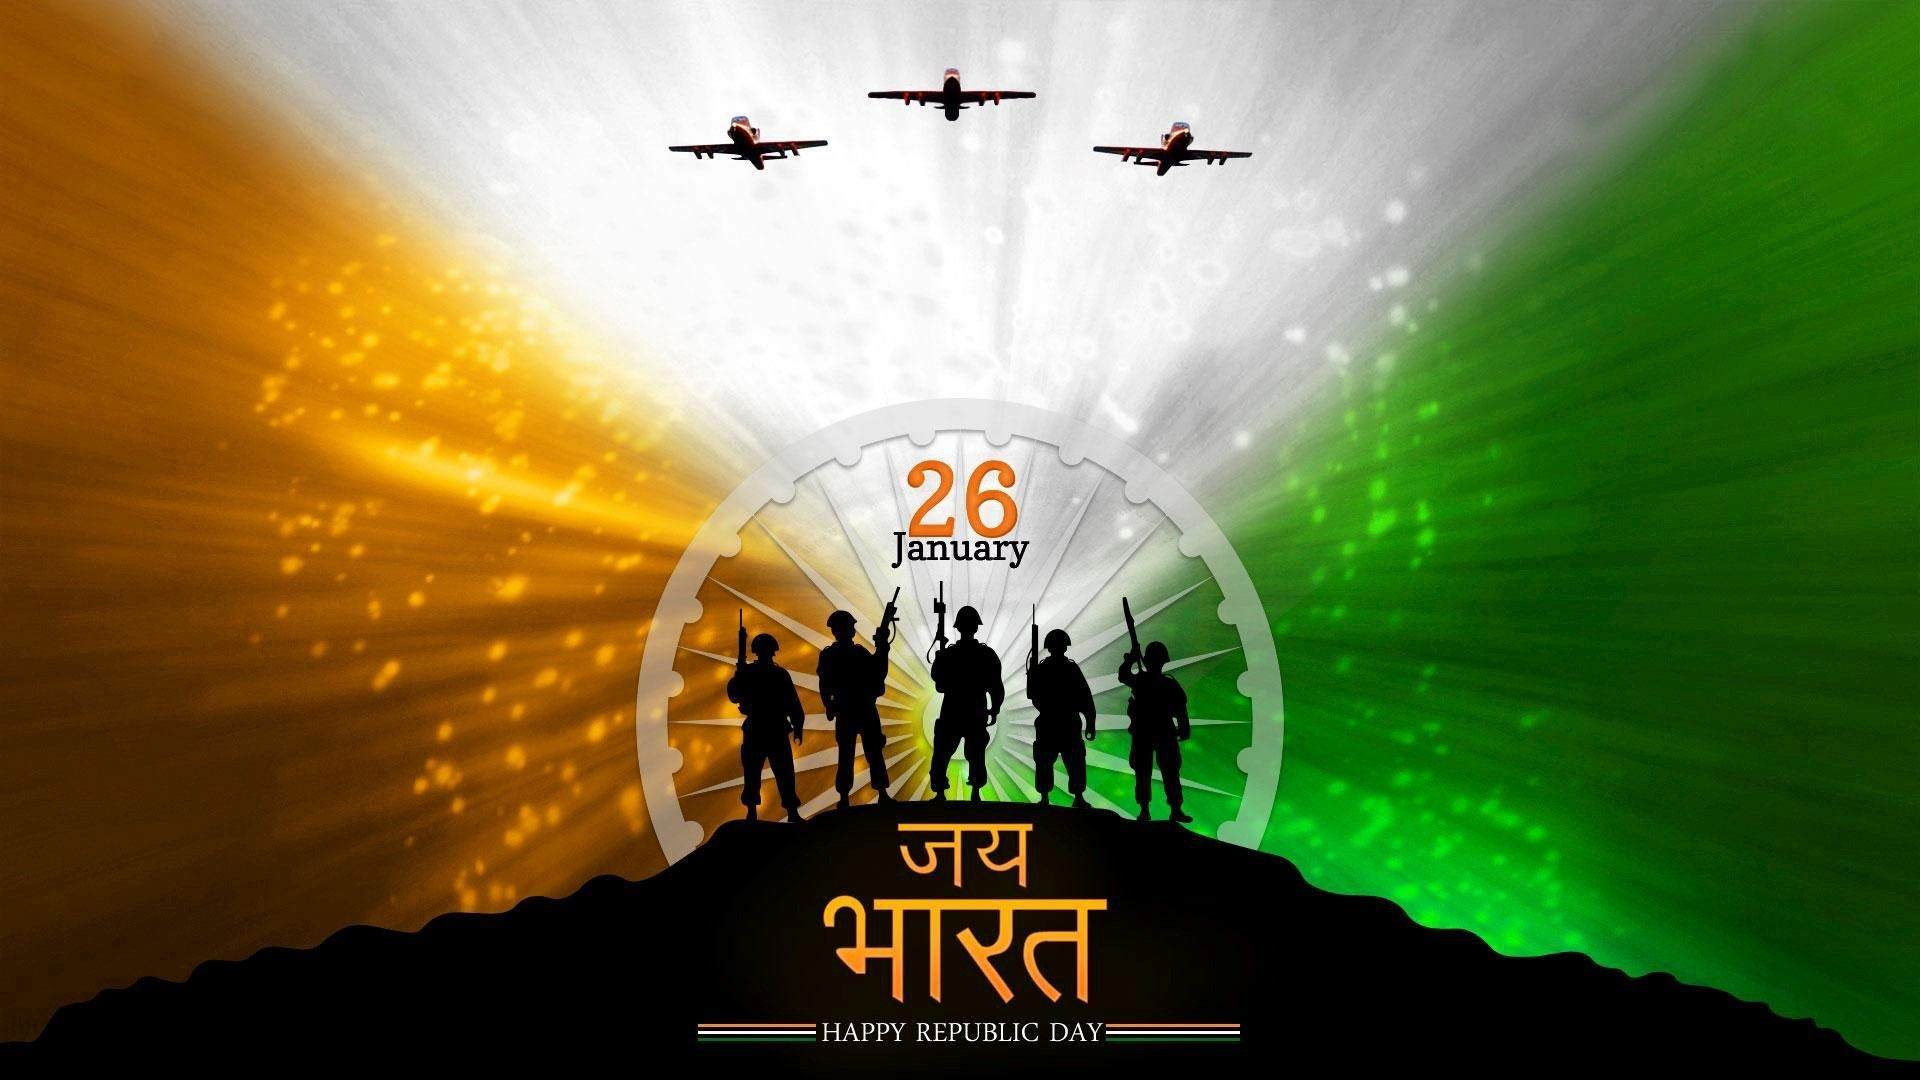 Republic Day Images For Whatsapp Facebook Iphone Dp